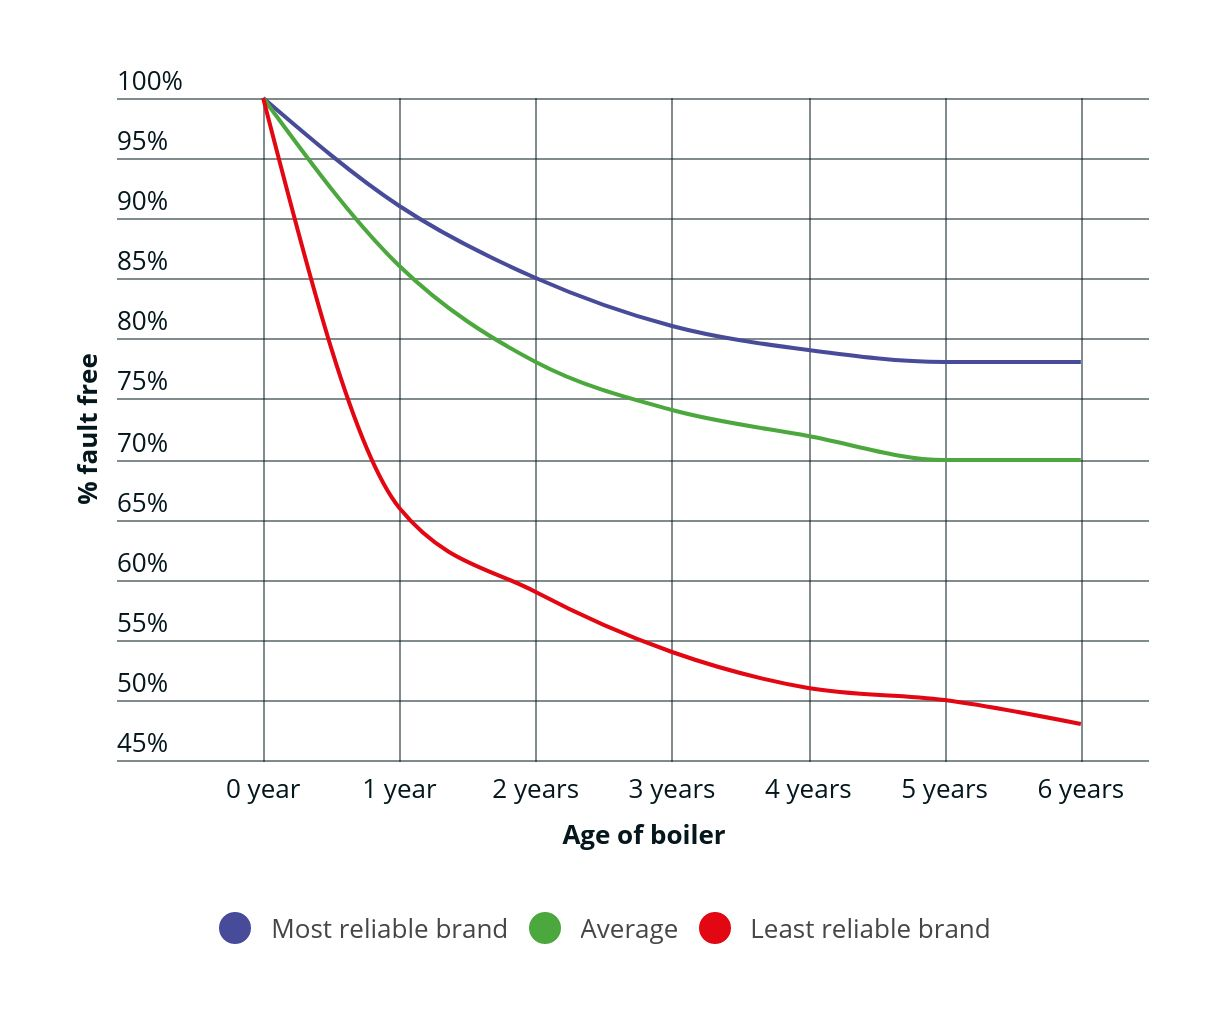 graph showing the percentage of fault free boilers versus the age of the boilers